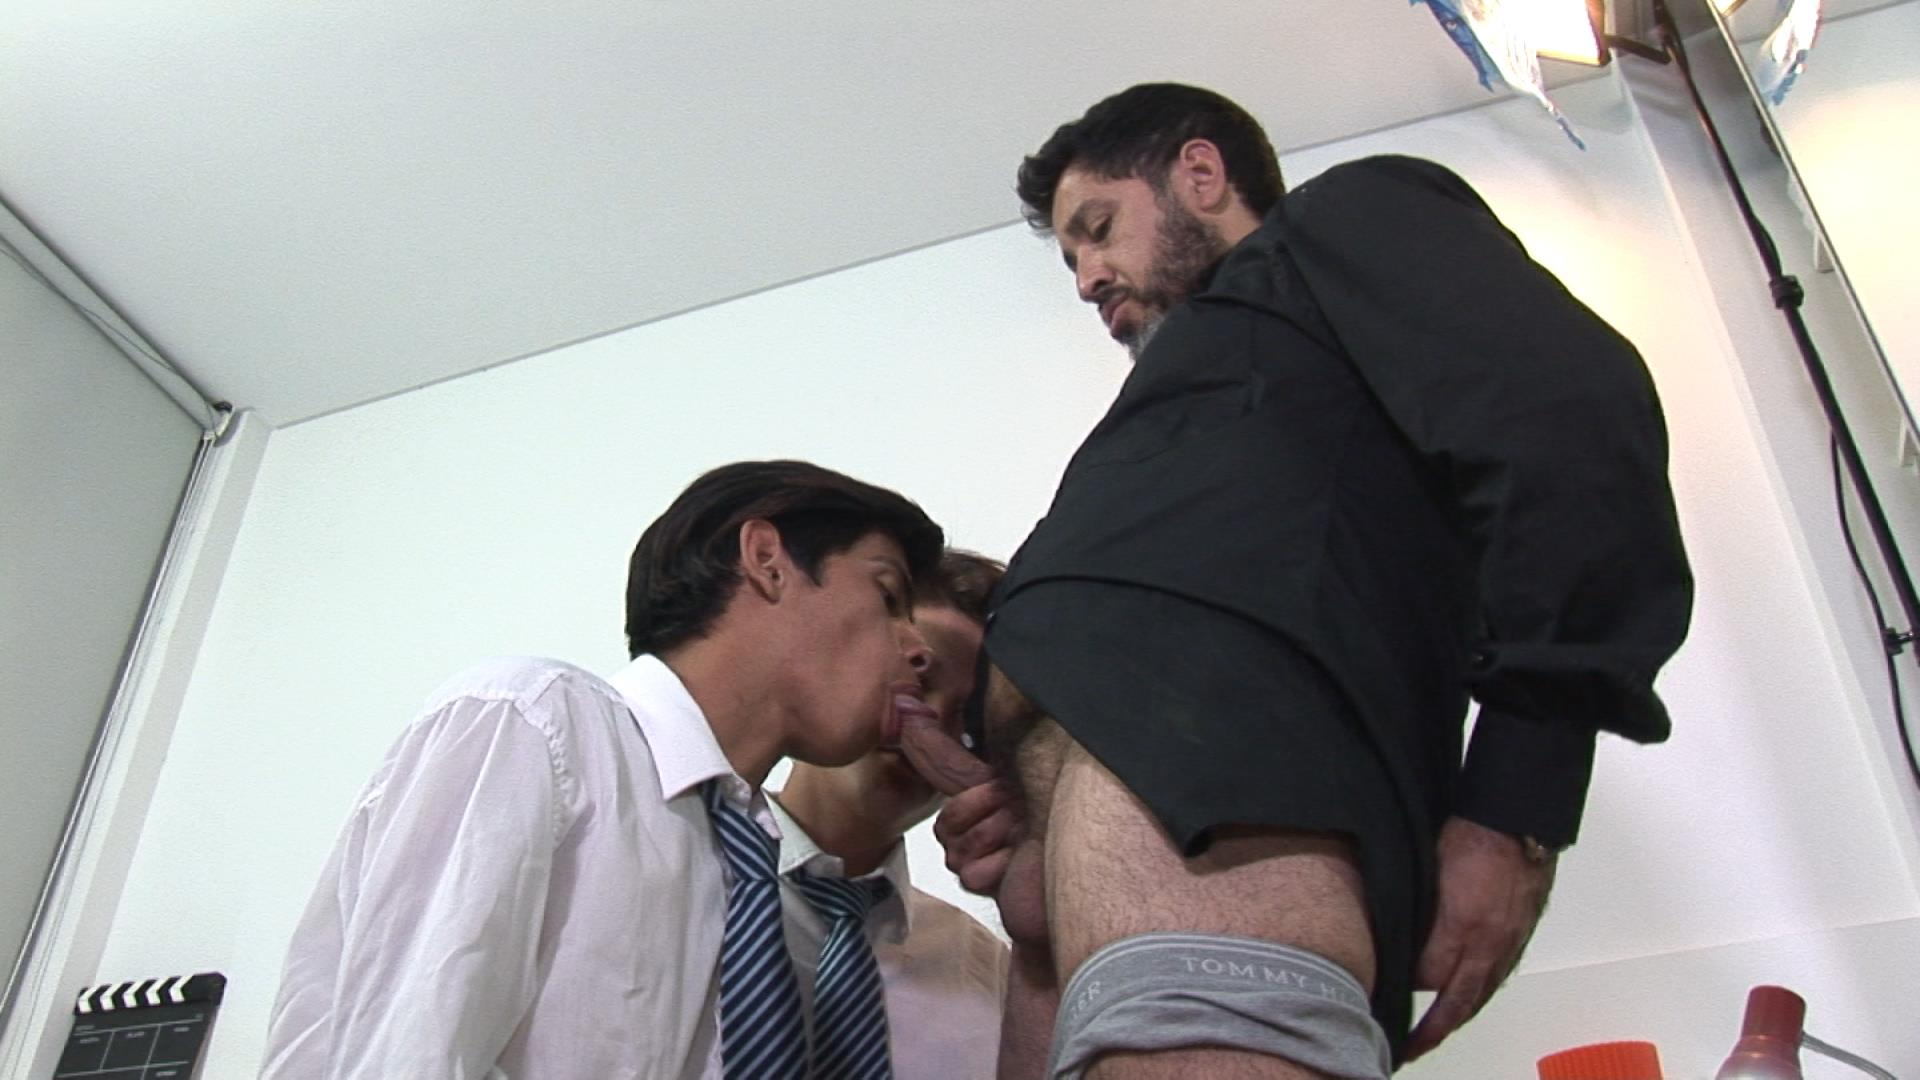 Bareback-Me-Daddy-Gay-Priest-Fucking-College-Students-11 Latin School Twinks Get Fucked By Their Older Catholic Priest